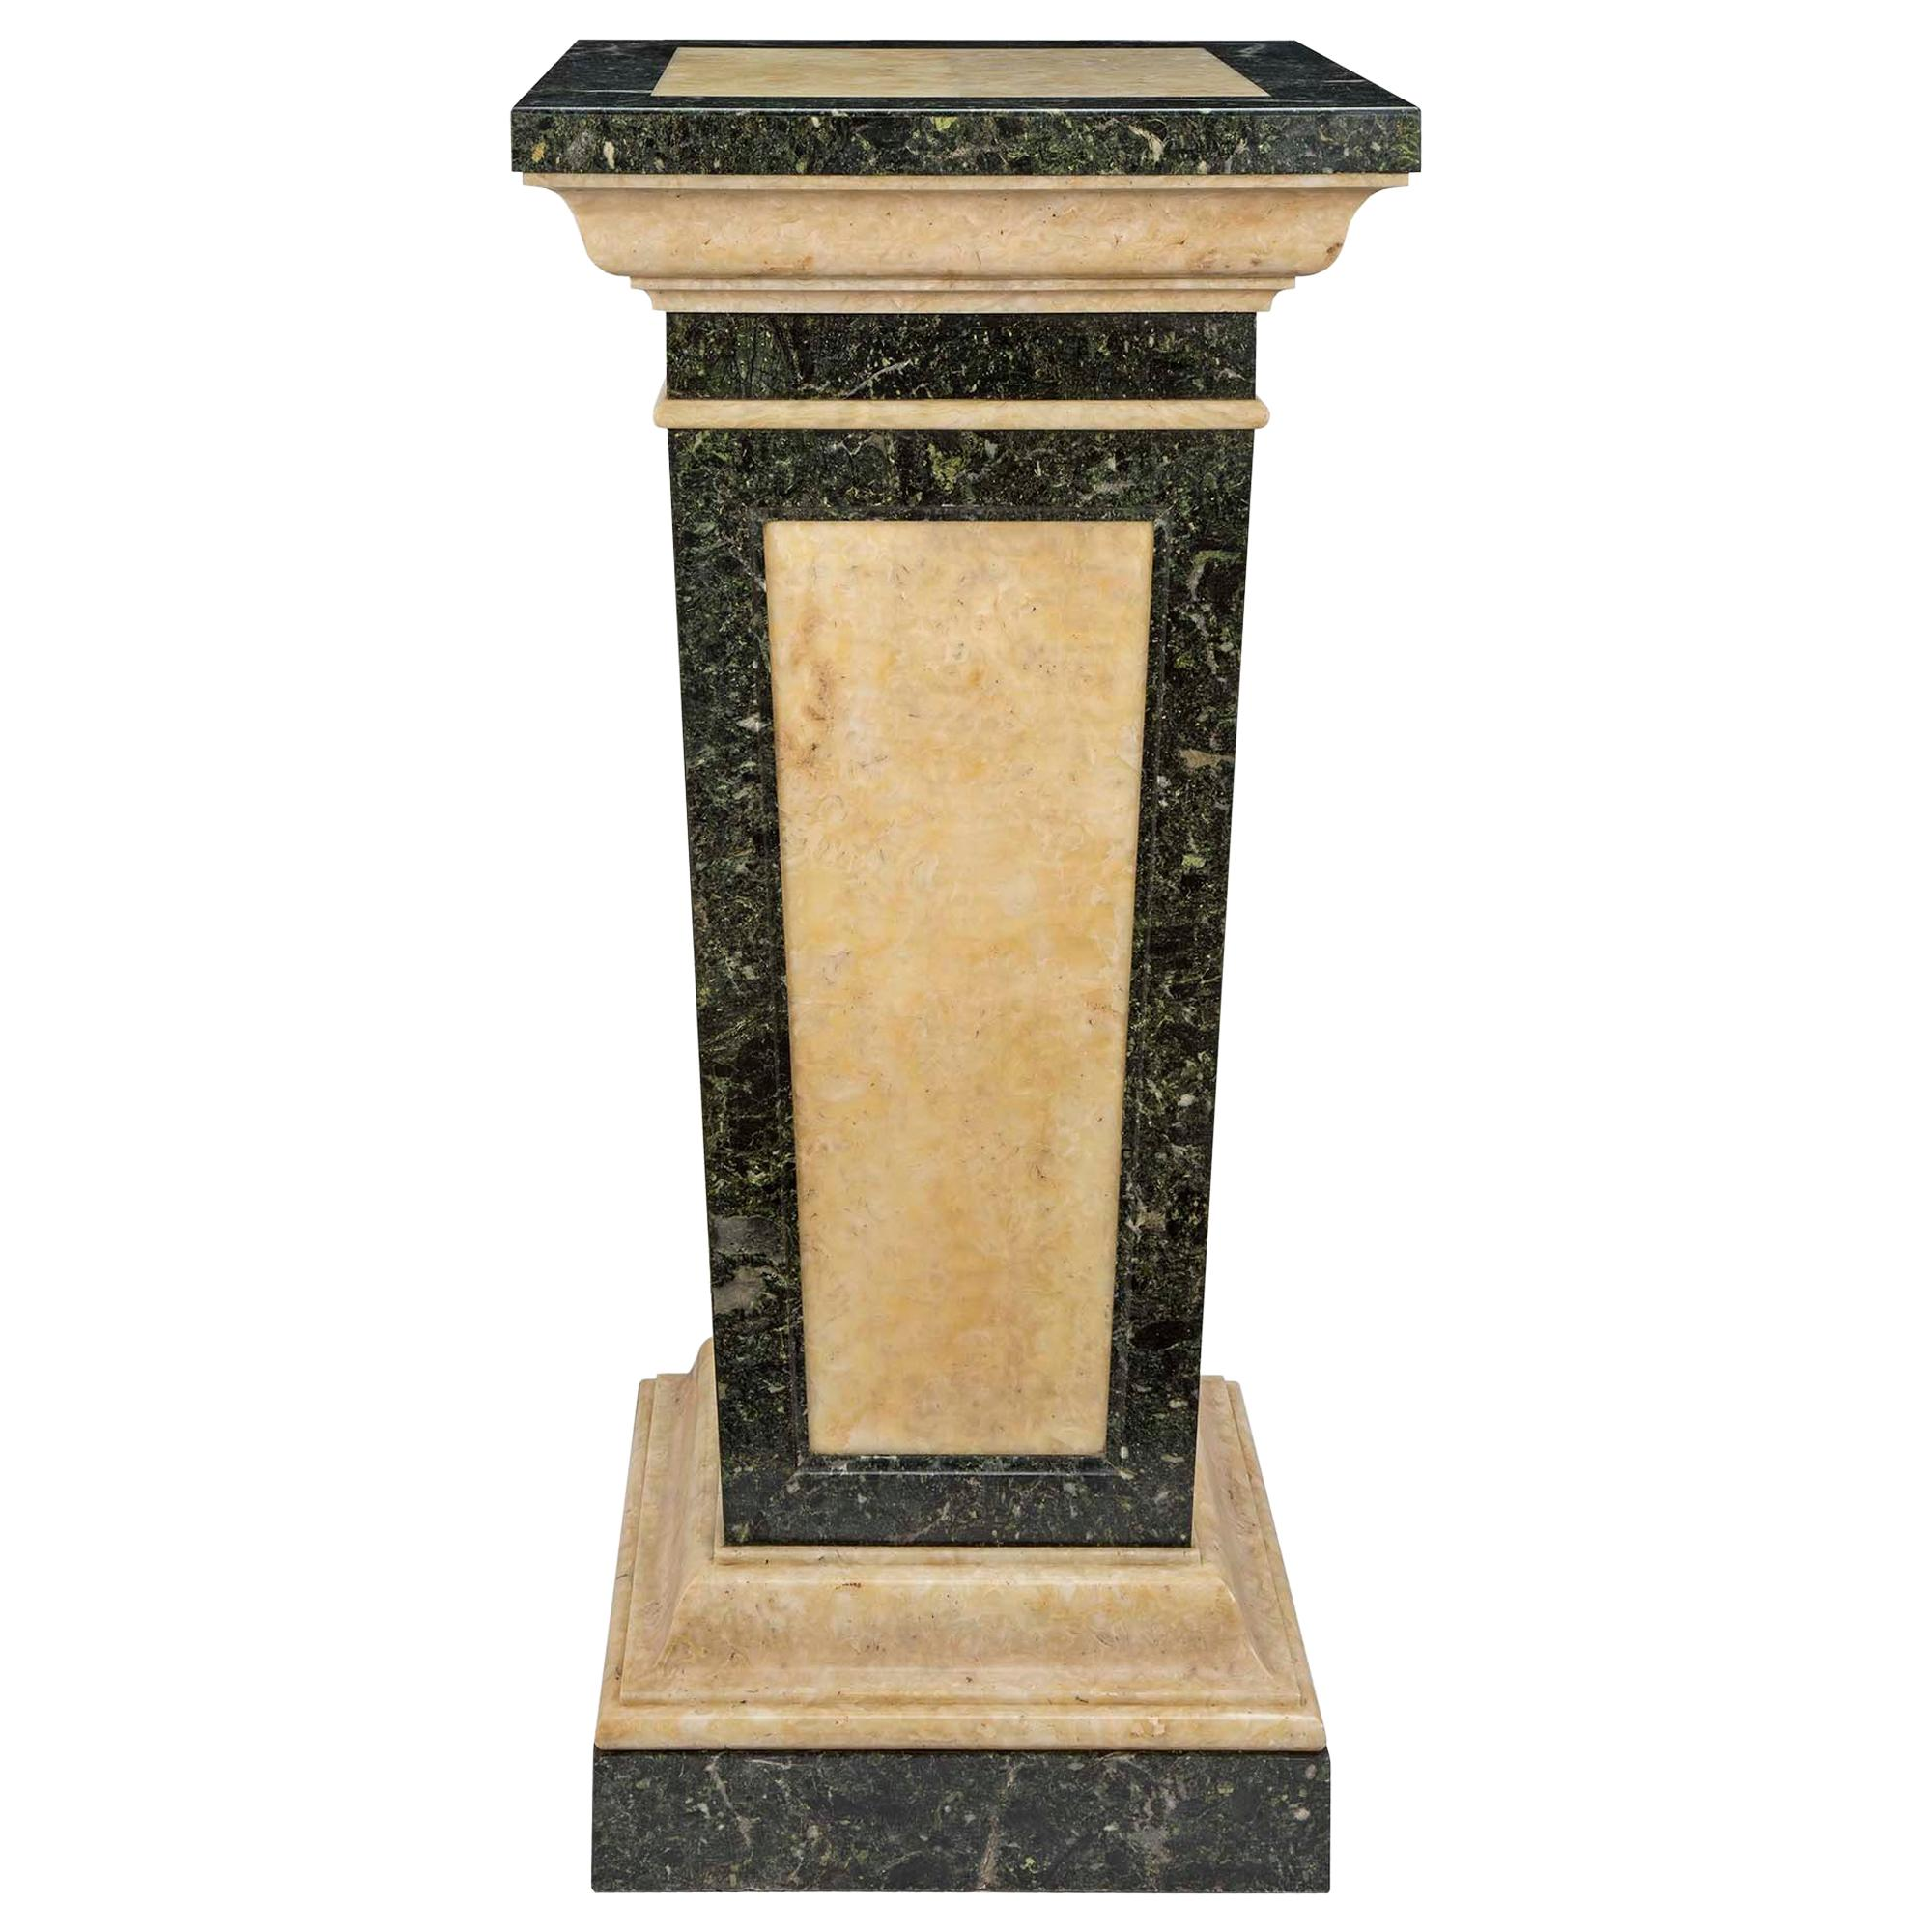 Italian Late 19th Century Neoclassical Style Alabaster and Marble Pedestal